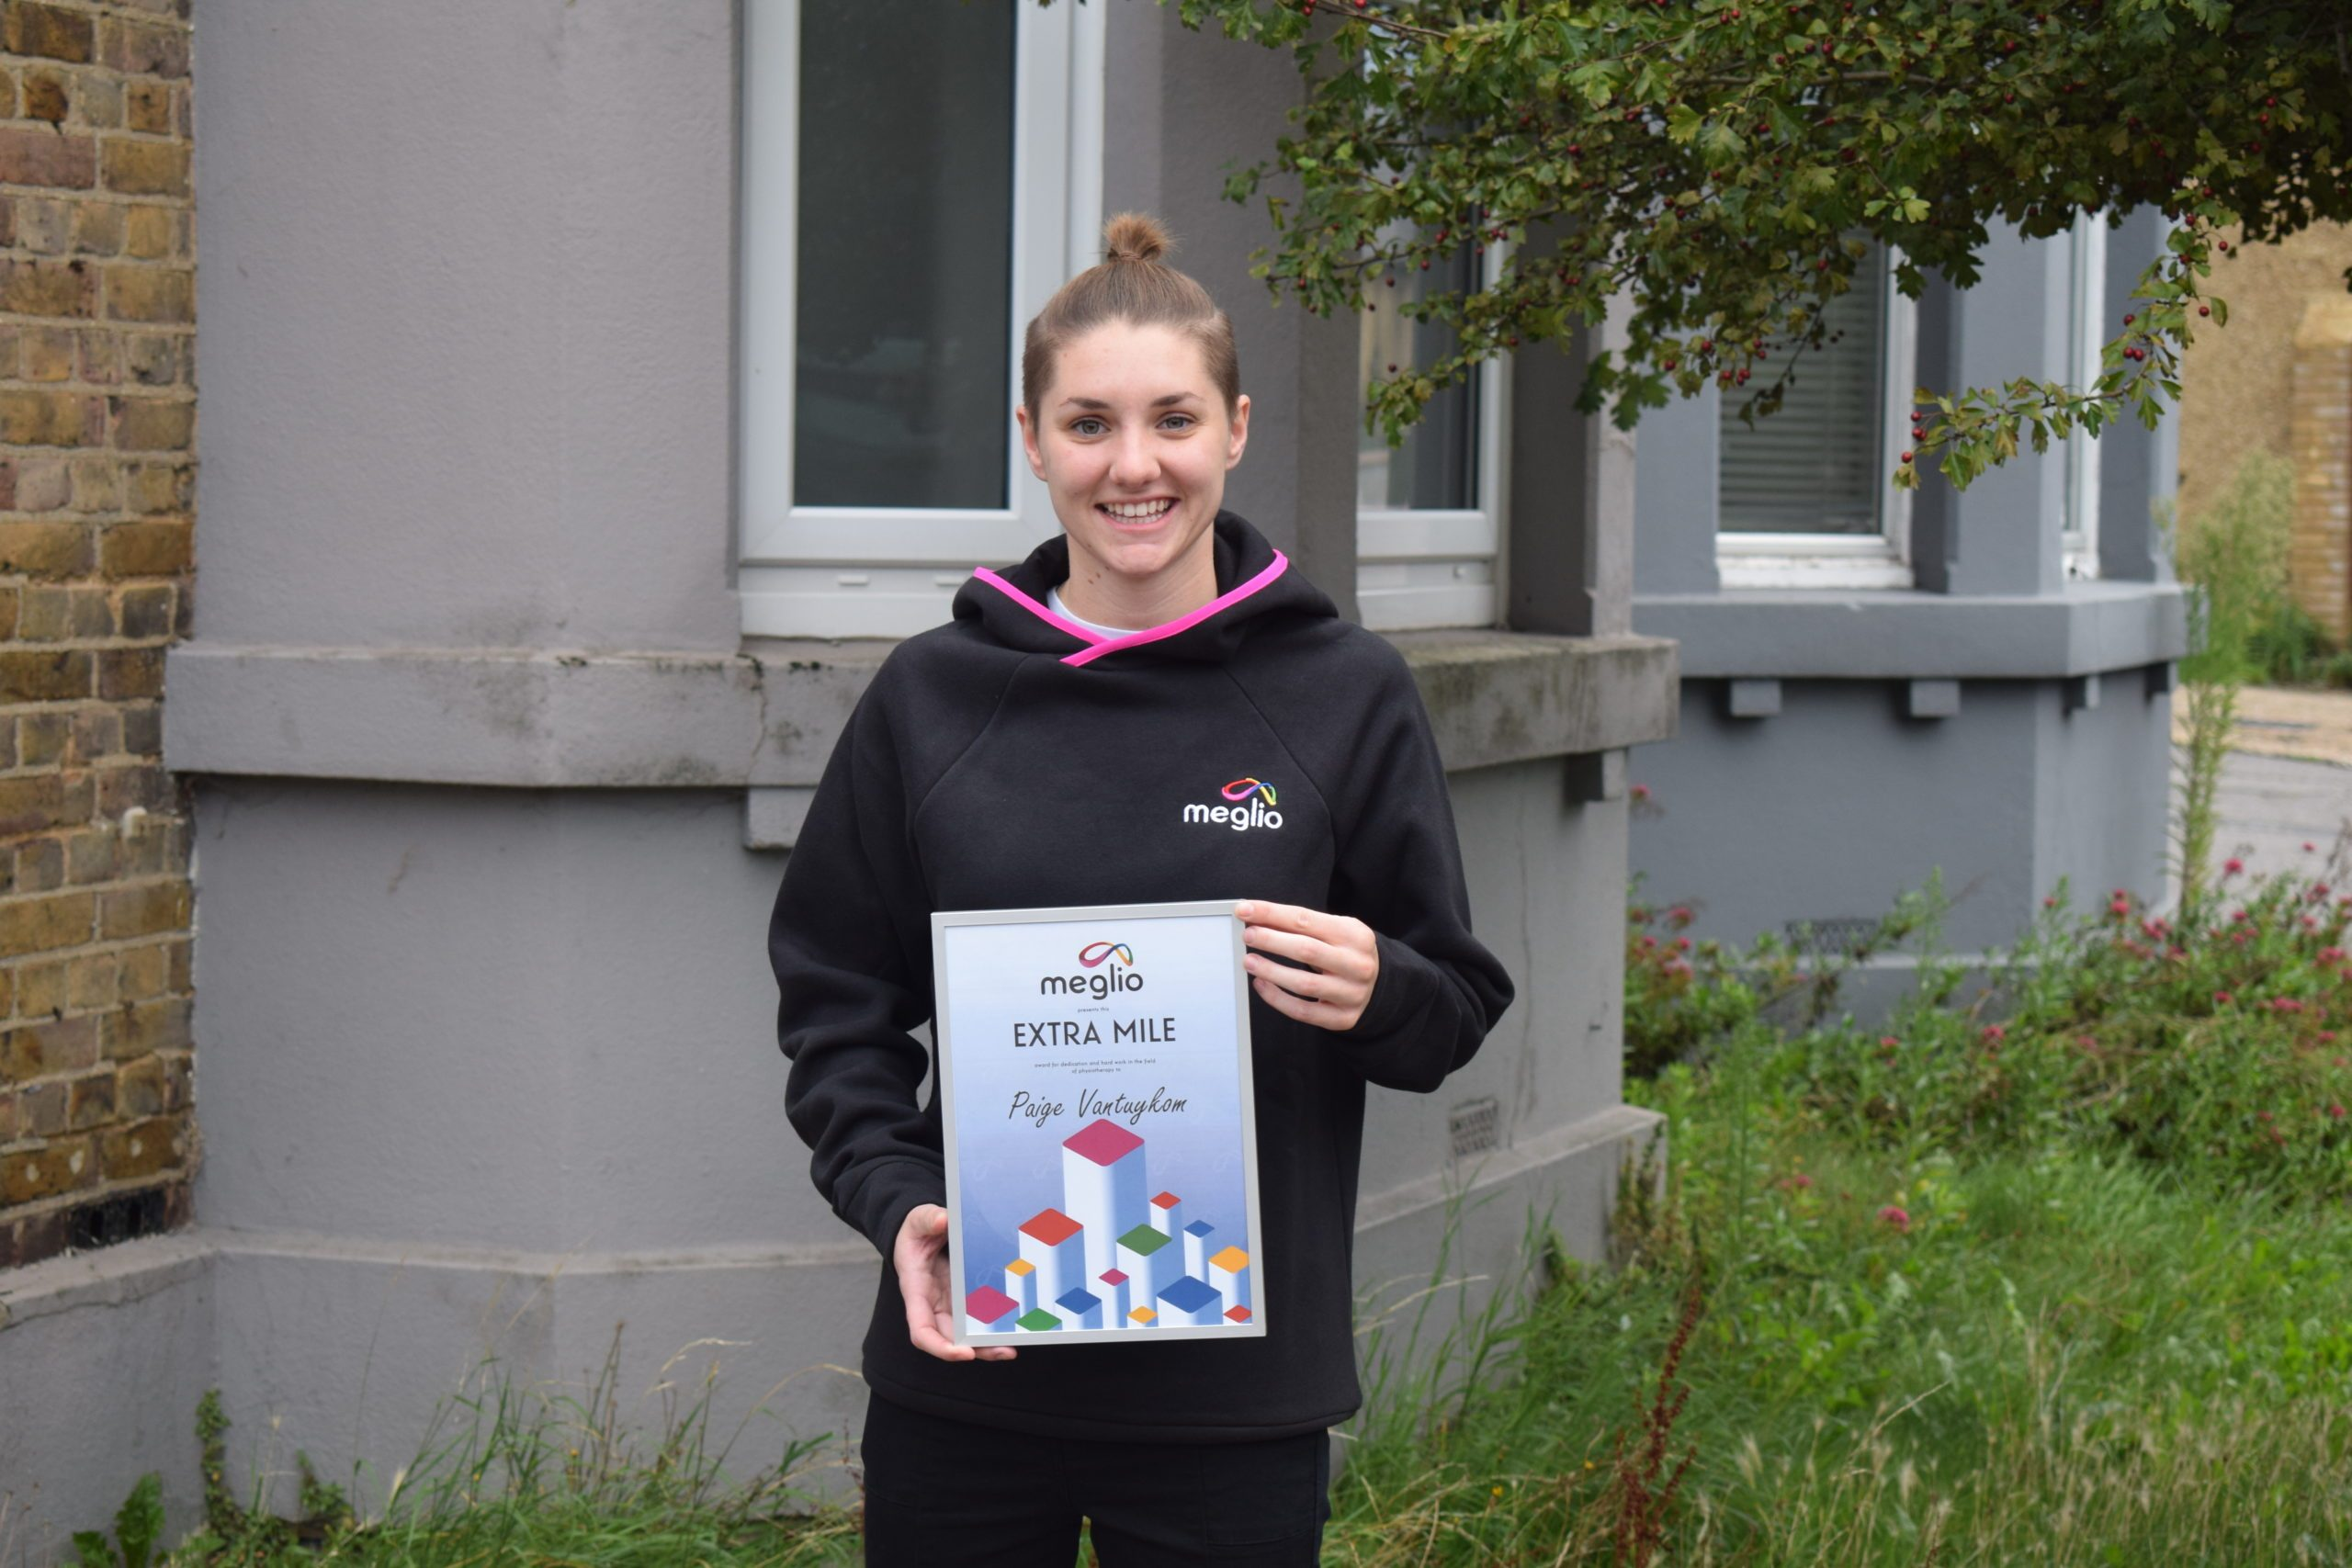 World Physiotherapy Day - Going The Extra Mile Award!